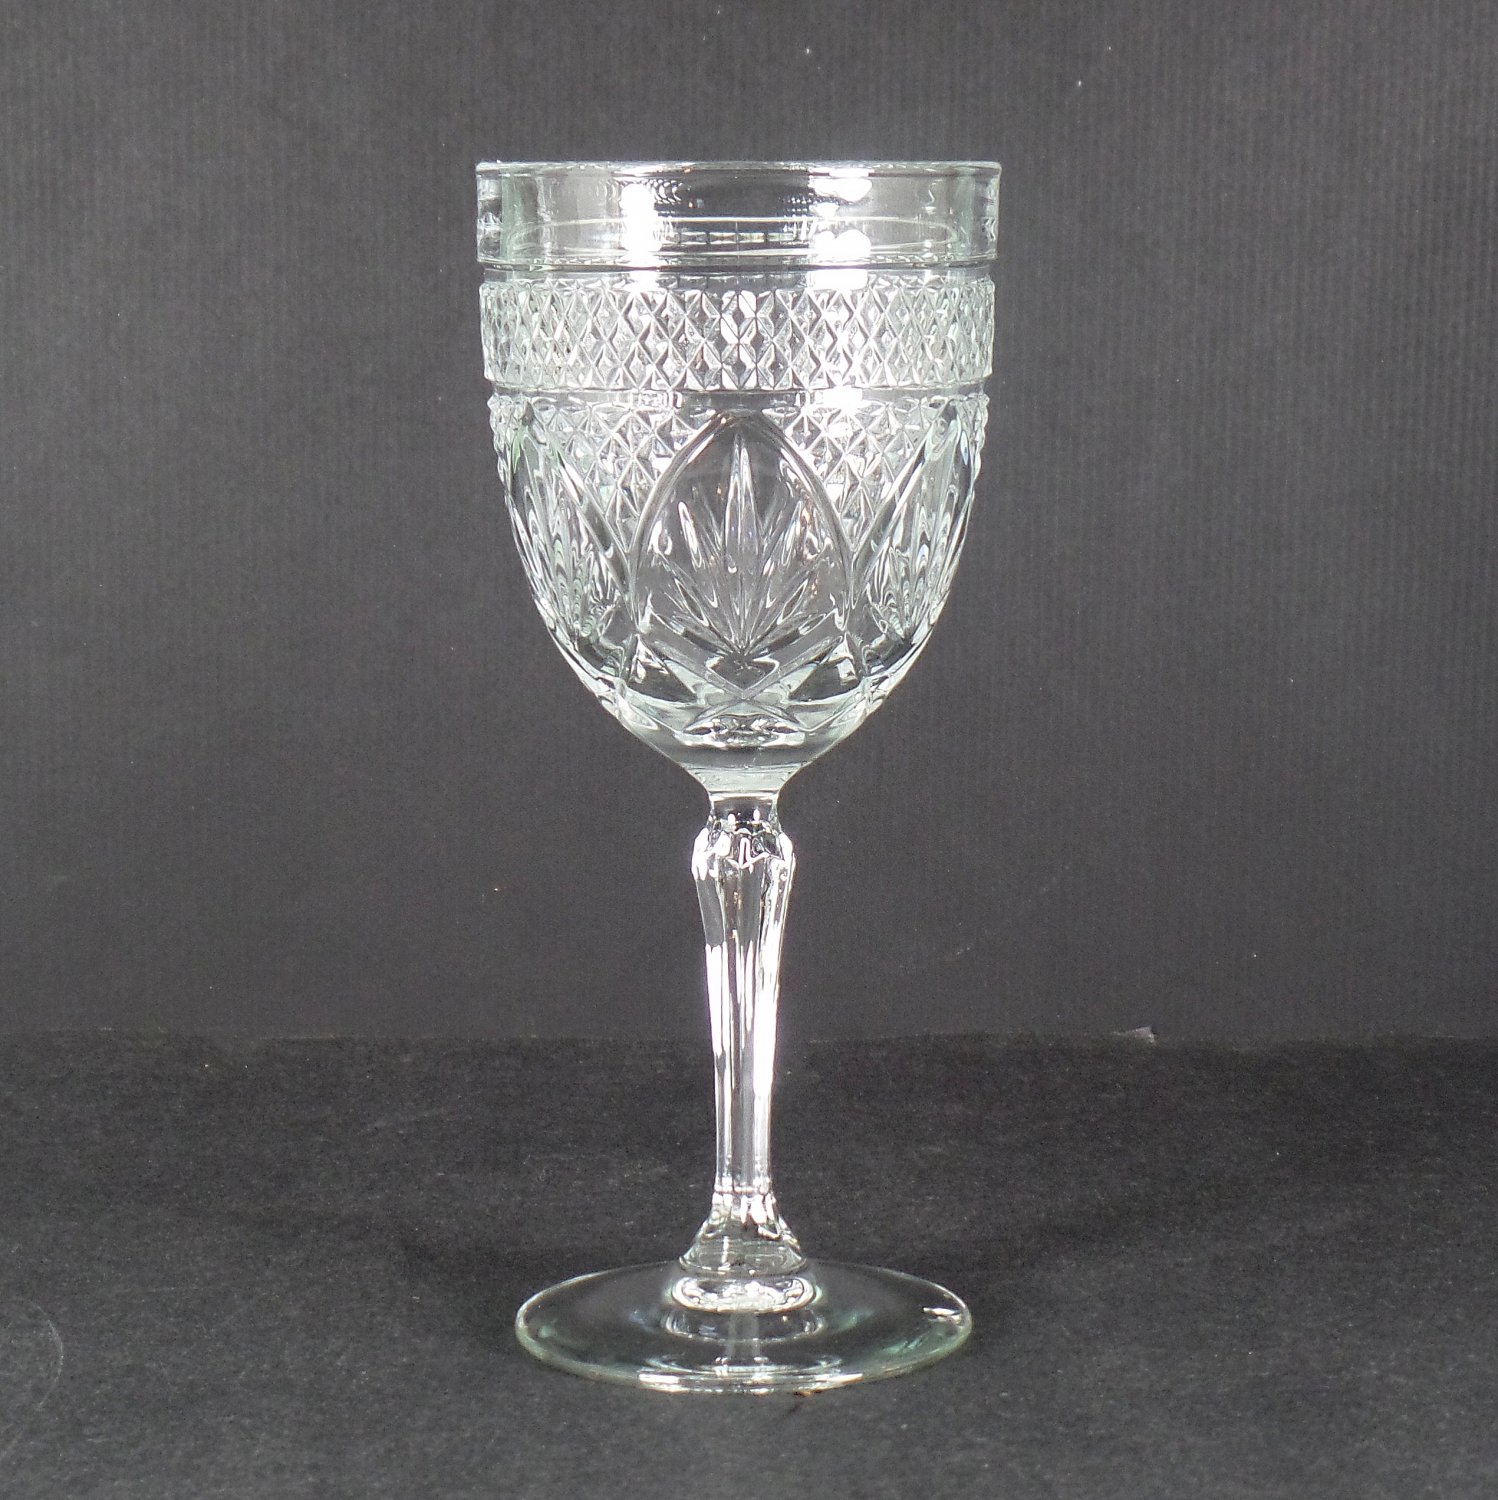 Cristal D'Arques Durand Antique Clear (6-Sided Stem) Wine Glass